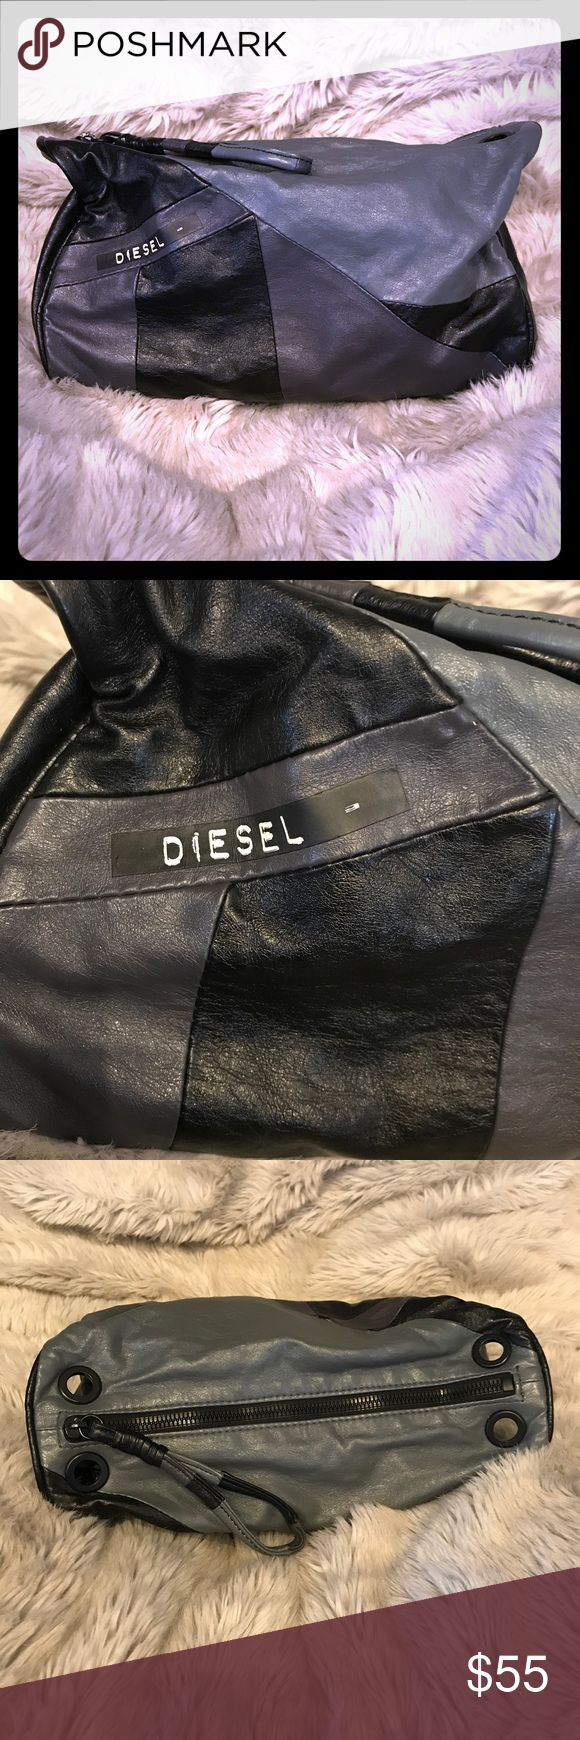 """Vintage Diesel Clutch or Wristlet Bag Vintage from early 90s. Exterior is in excellent condition. Interior shows some wear from carrying makeup. Cool retro look. No straps. It didn't come w straps. Measures 9"""" L x 11"""" W Diesel Bags Clutches & Wristlets"""